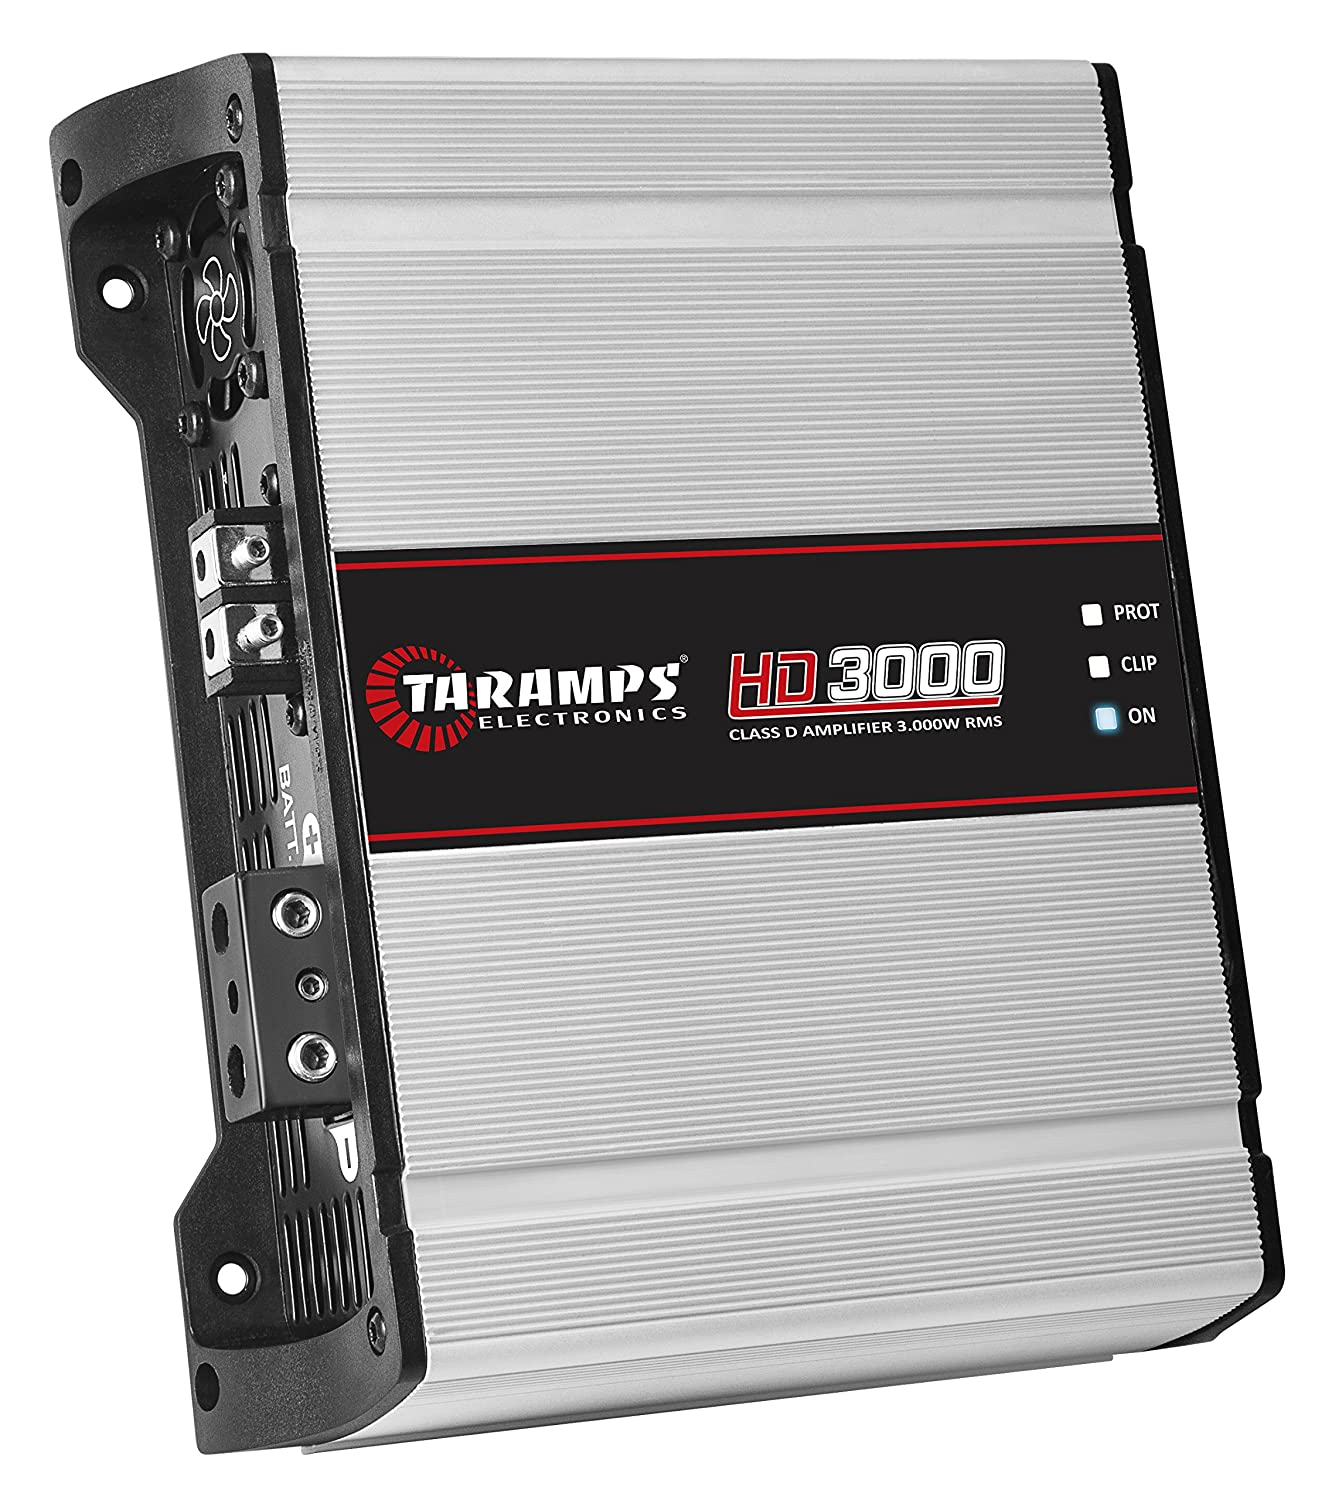 Taramp HD3000-1 Very High Power One Ohm Stable Single Channel Car Audio Amplifier by Taramp's B00FGULS78